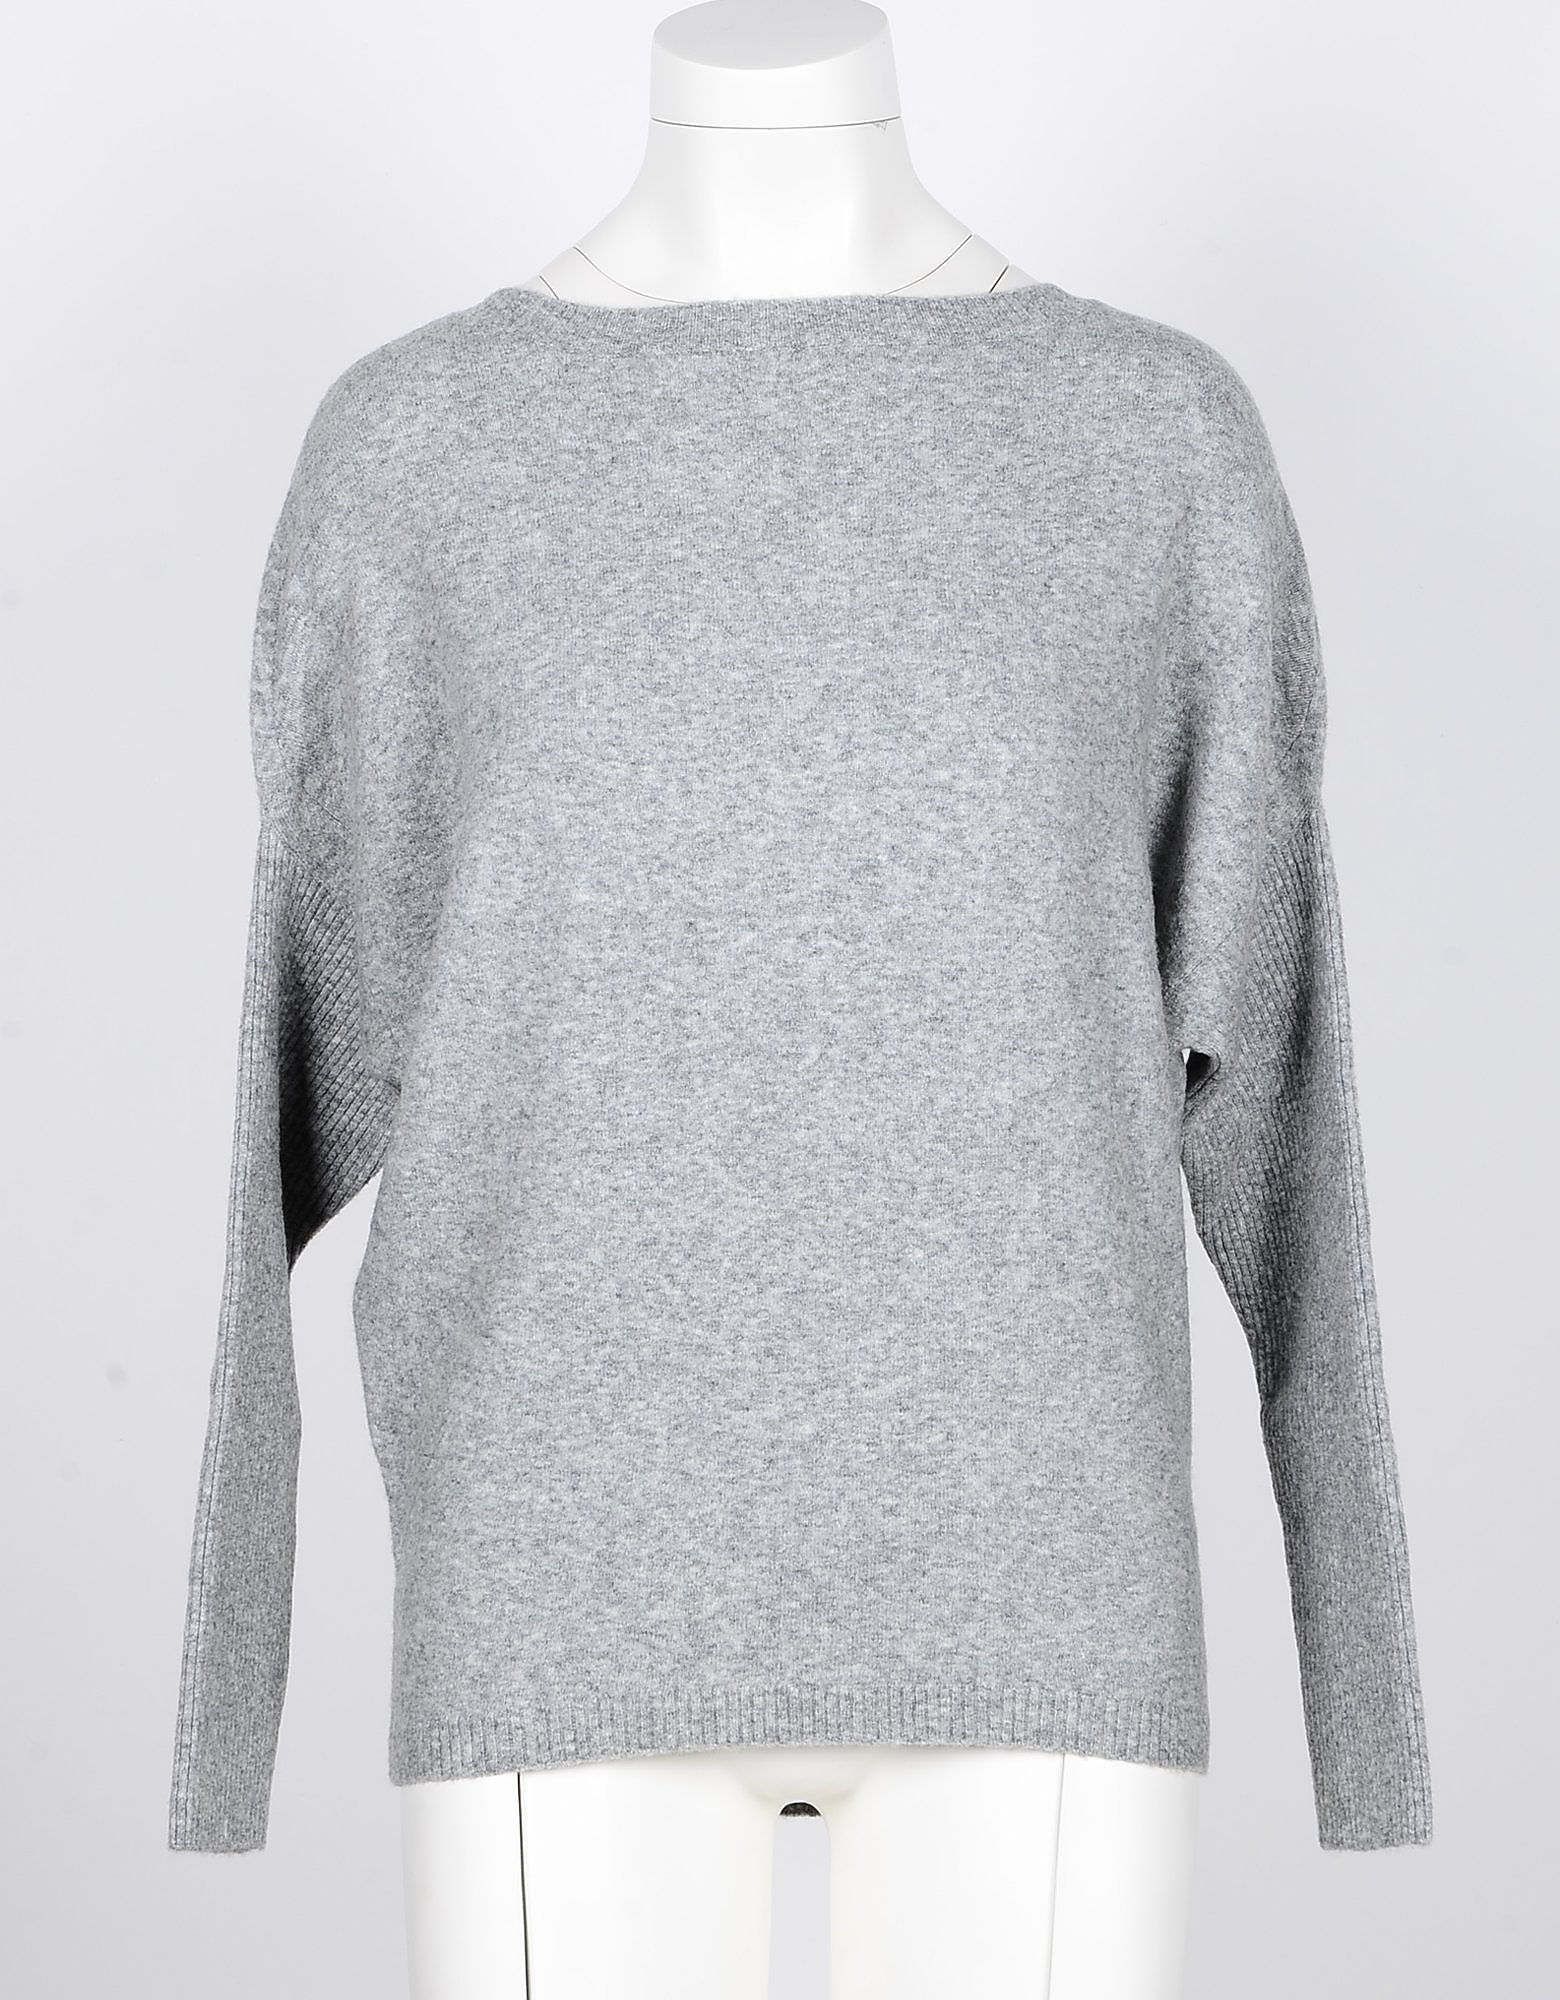 SNOBBY SHEEP Designer Knitwear, Gray Yak and Wool Blend Women's Sweater